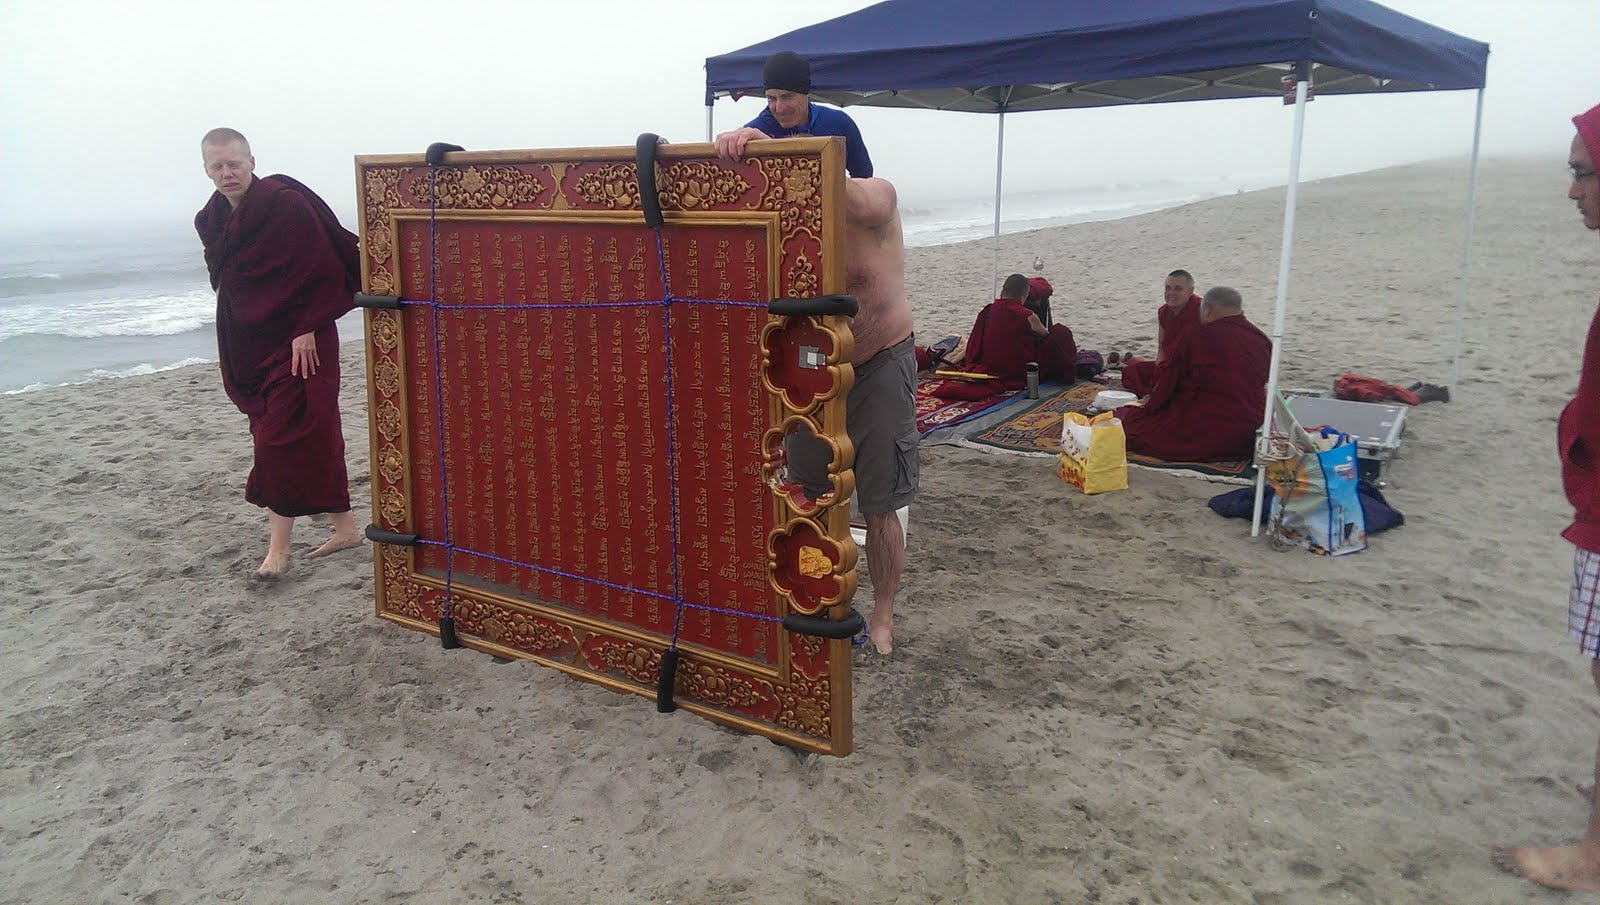 Mantra board at the beach to bless beings in the ocean.